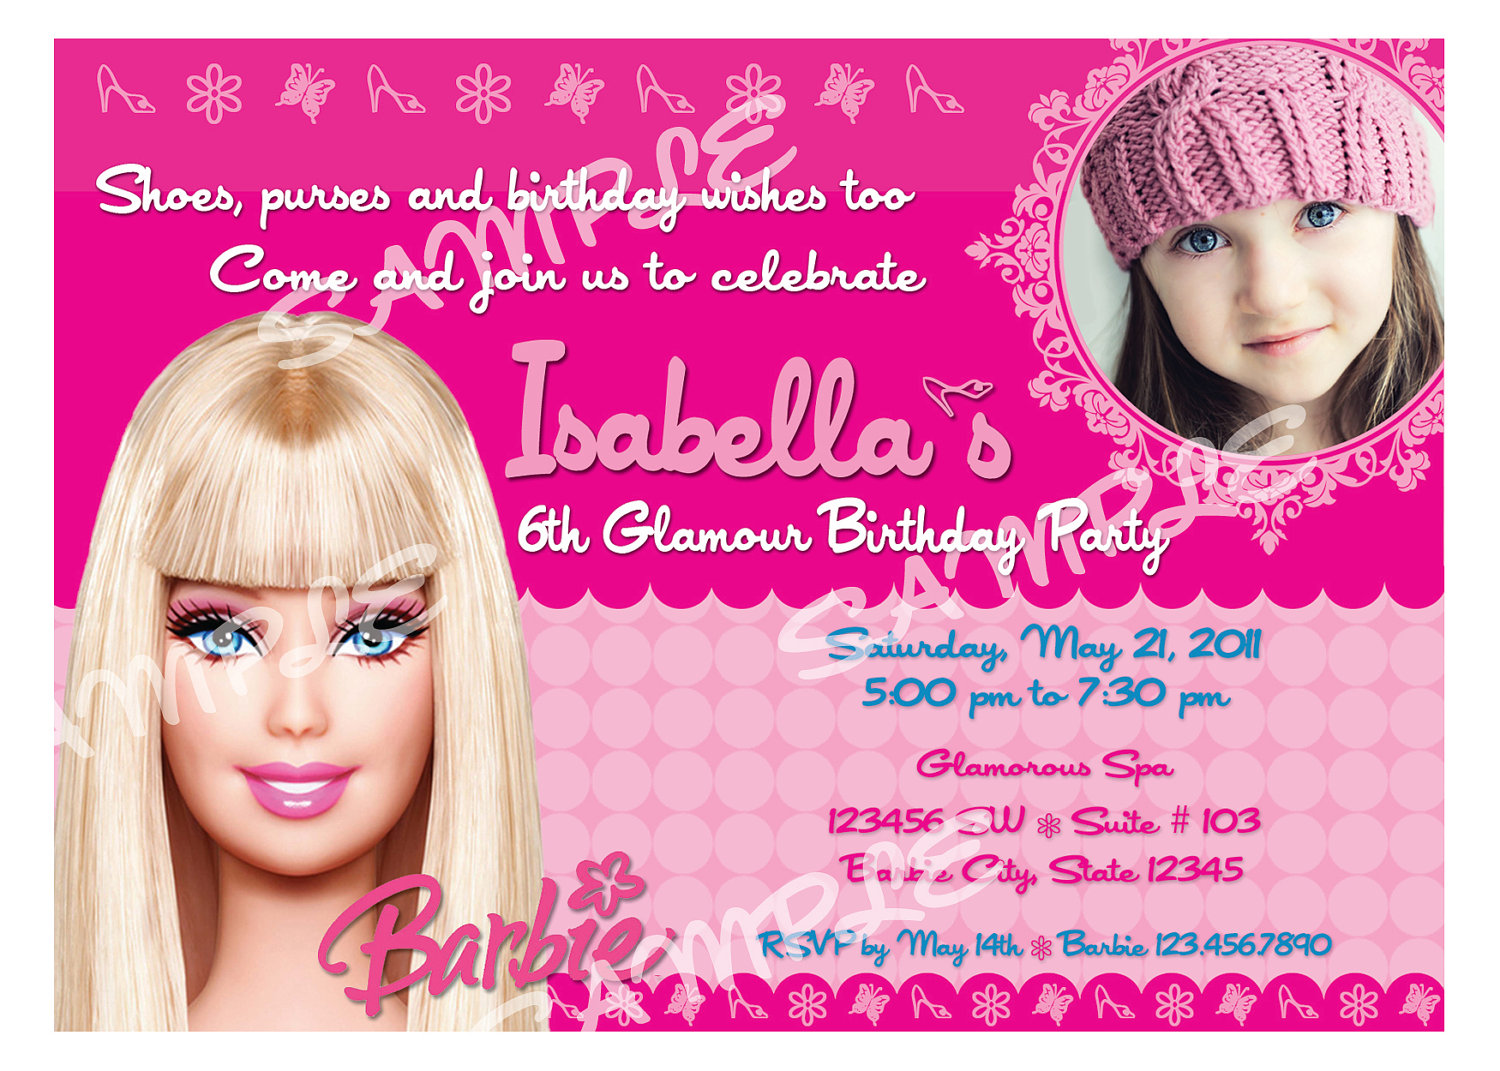 birthday invitation barbie theme ; 11d02d6aa94e66025920b75ac1a733e1